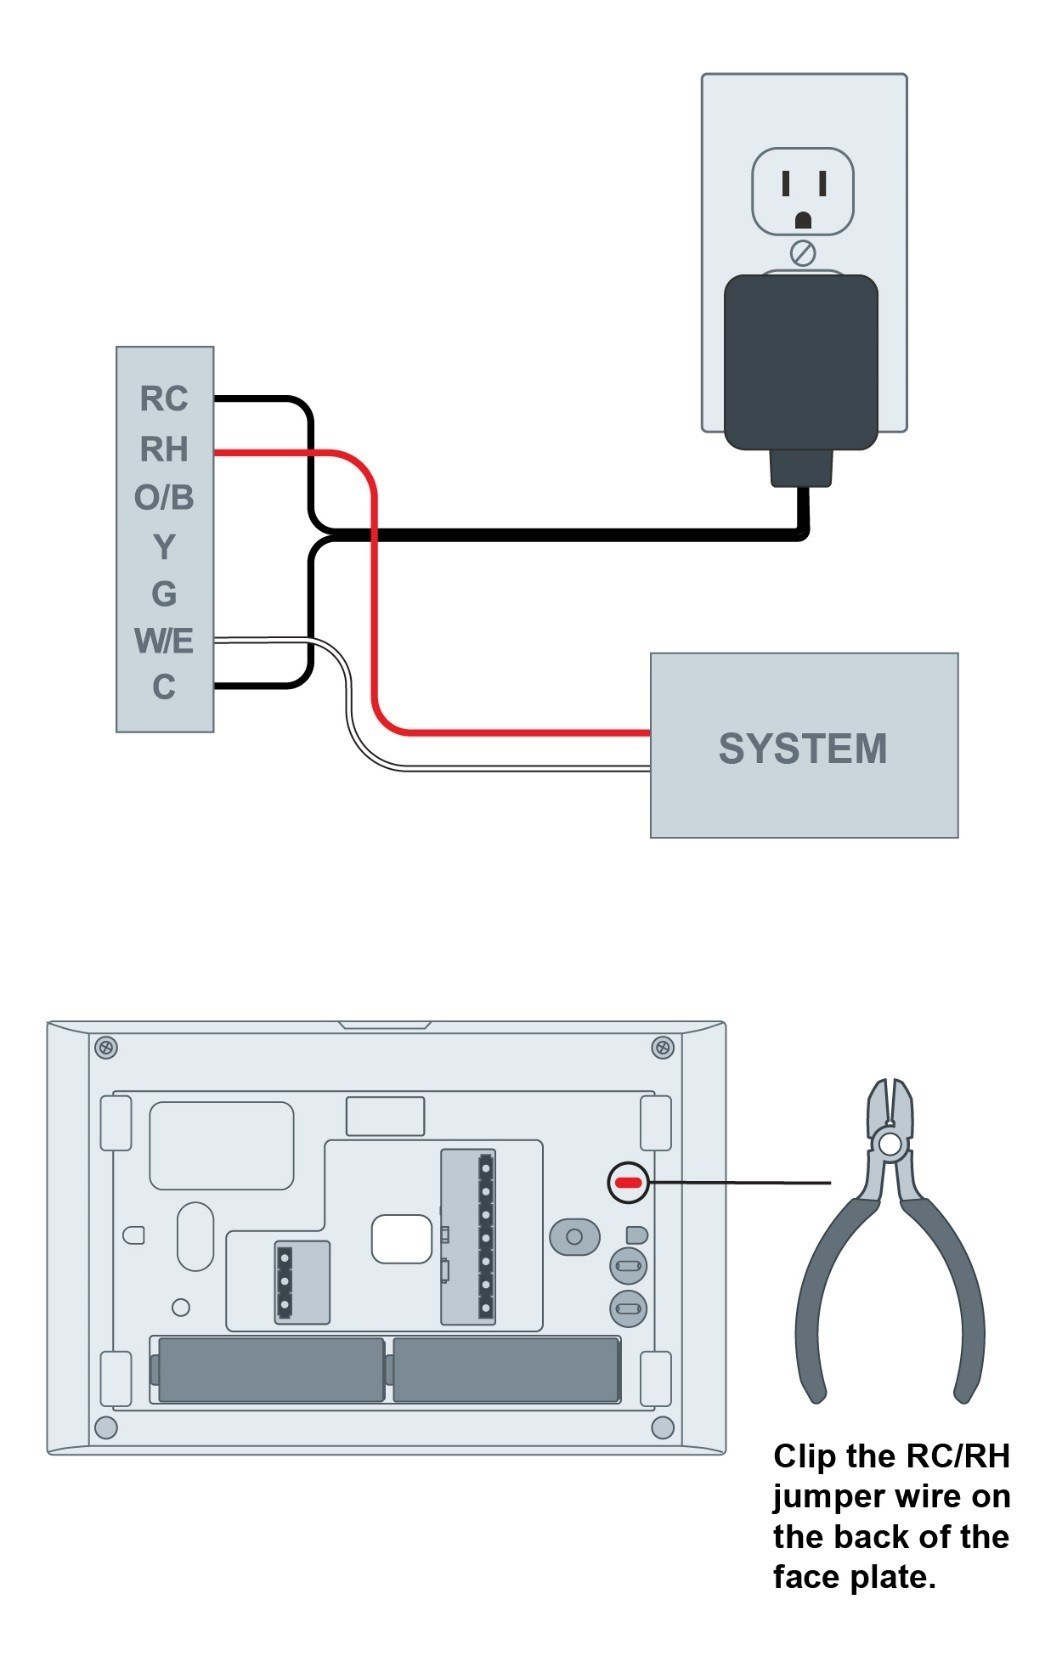 Adding A 24 Vac External Transformer: A Diy Option For Heat-Only - Nest Thermostat Wiring Diagram To Transformer